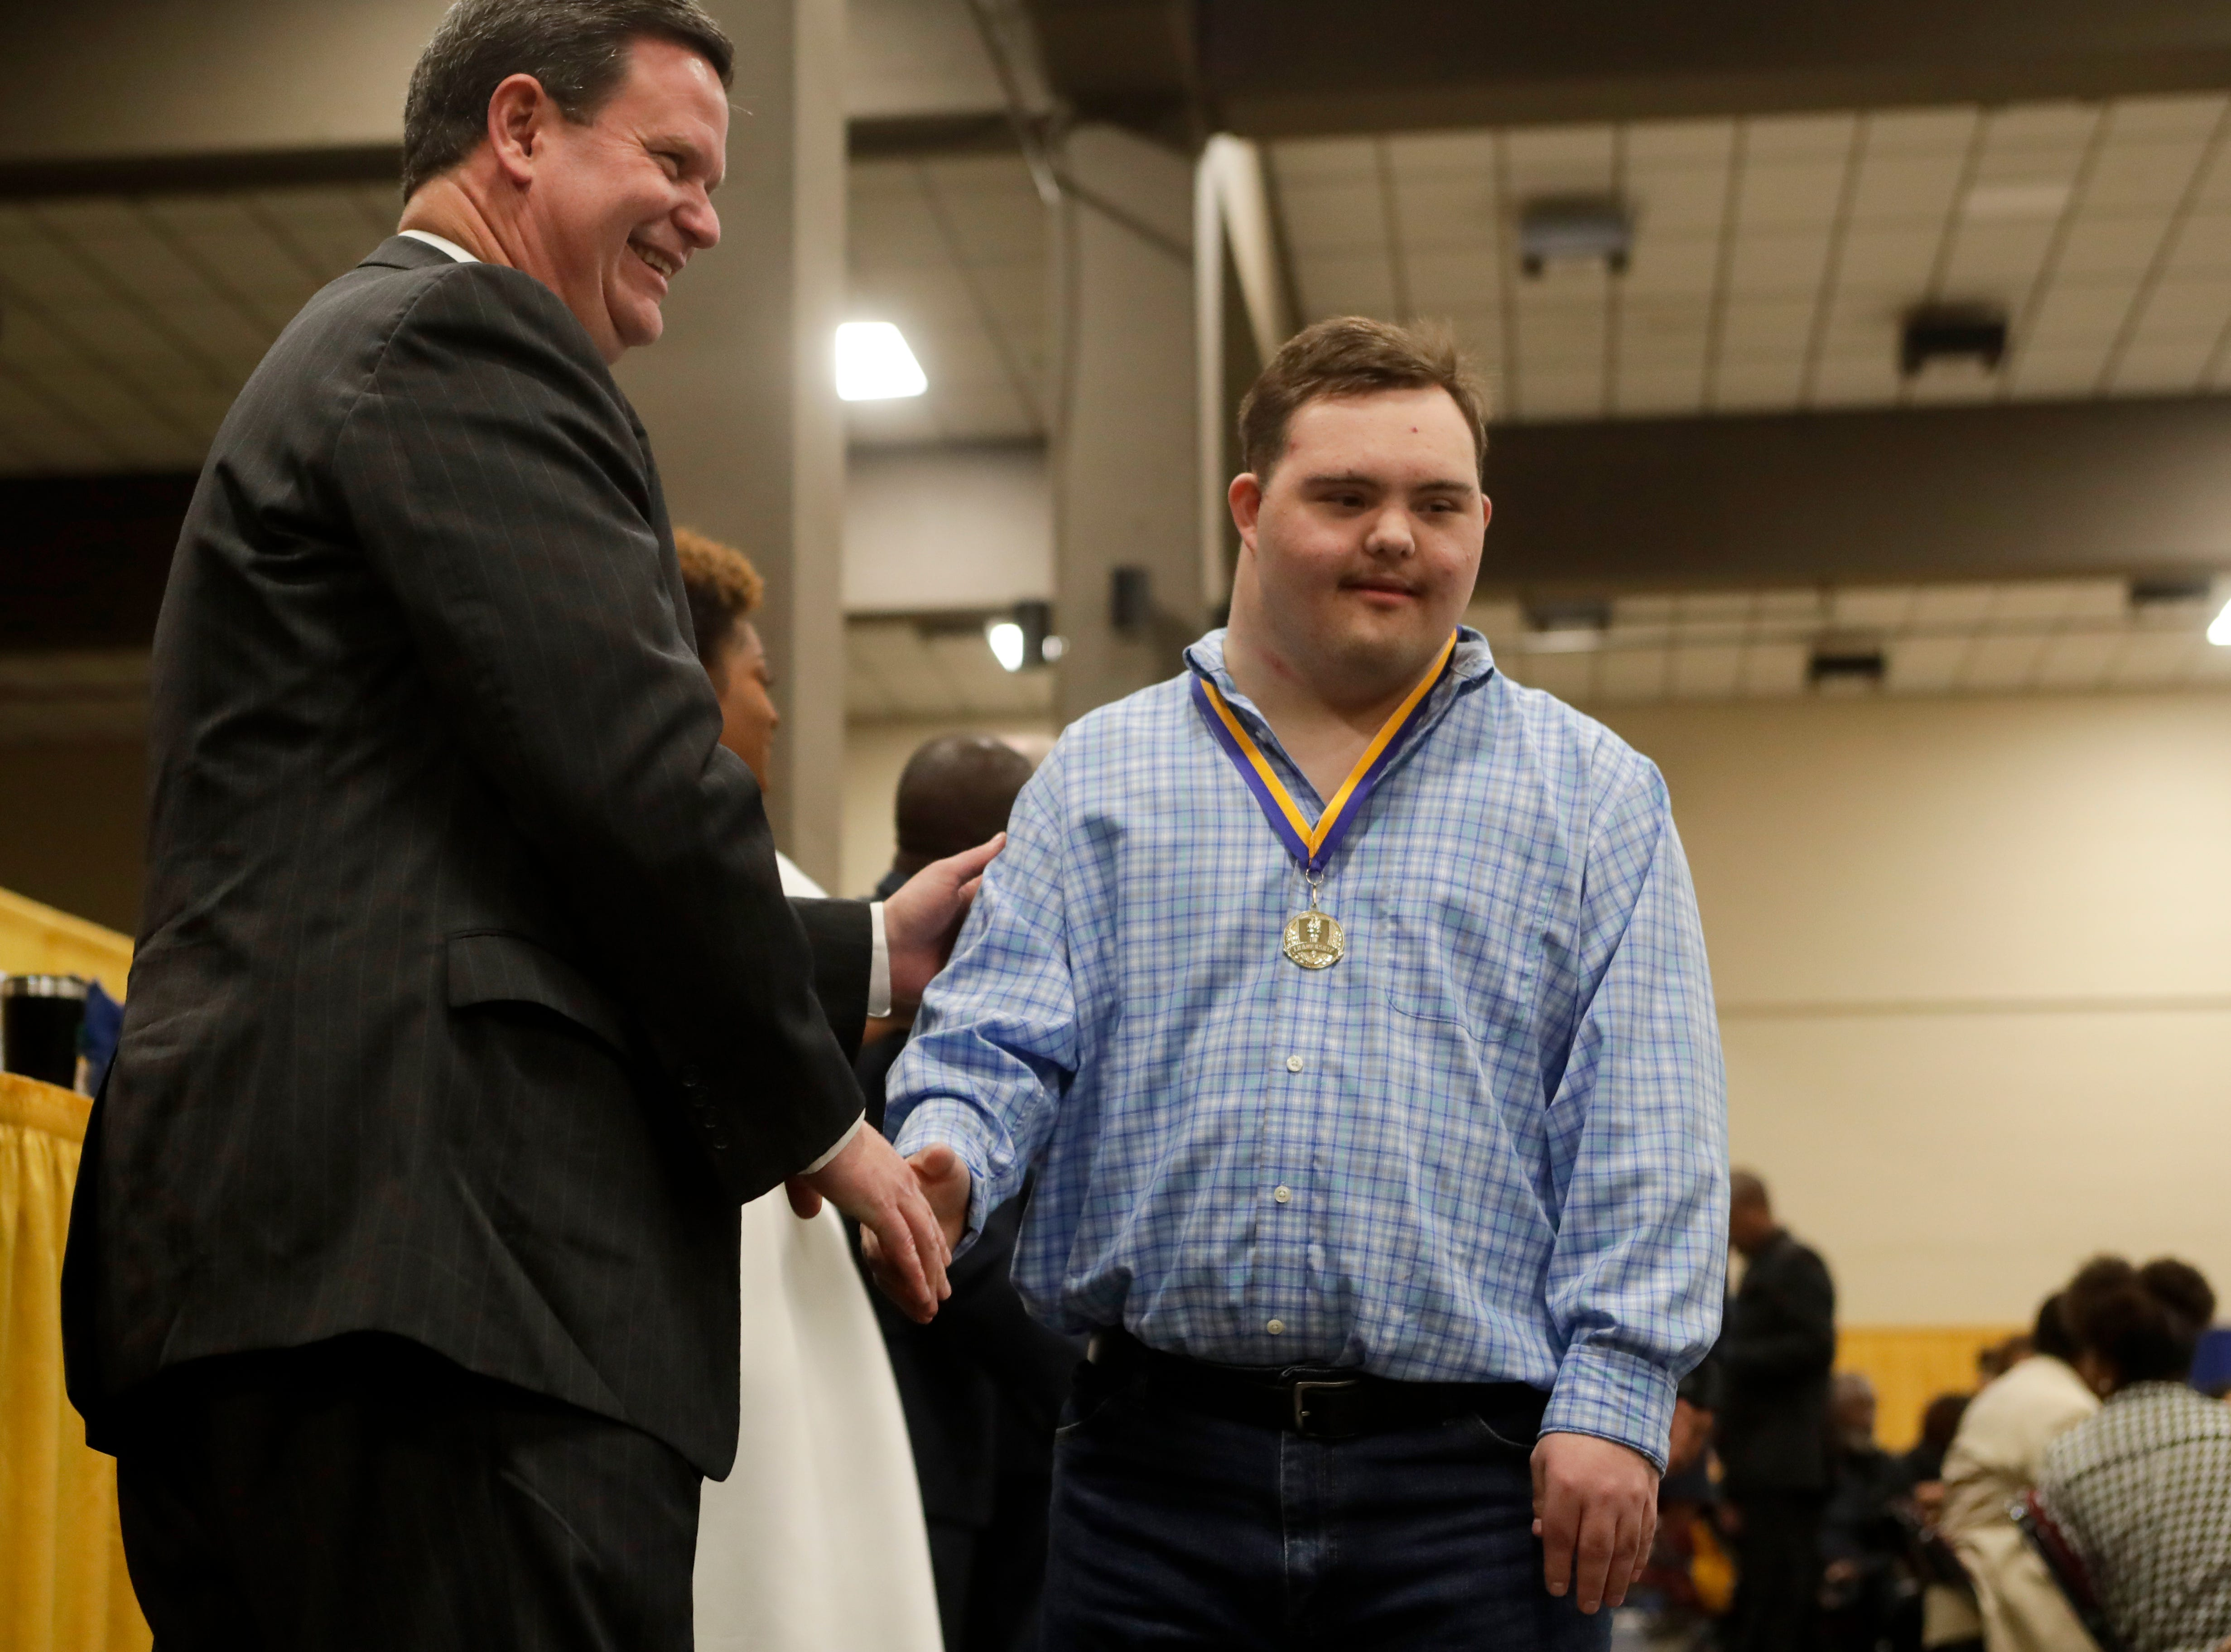 "Justin Dodson, 21, a Gretchen Everhart School student, shakes hands with Mayor John Dailey after receiving a medal at the Martin Luther King Jr. commemorative breakfast held at the Donald L. Tucker Civic Center Friday, Jan. 18, 2019. Leon County School students were given medals in recognition for being ""Dreamers and Doers."""